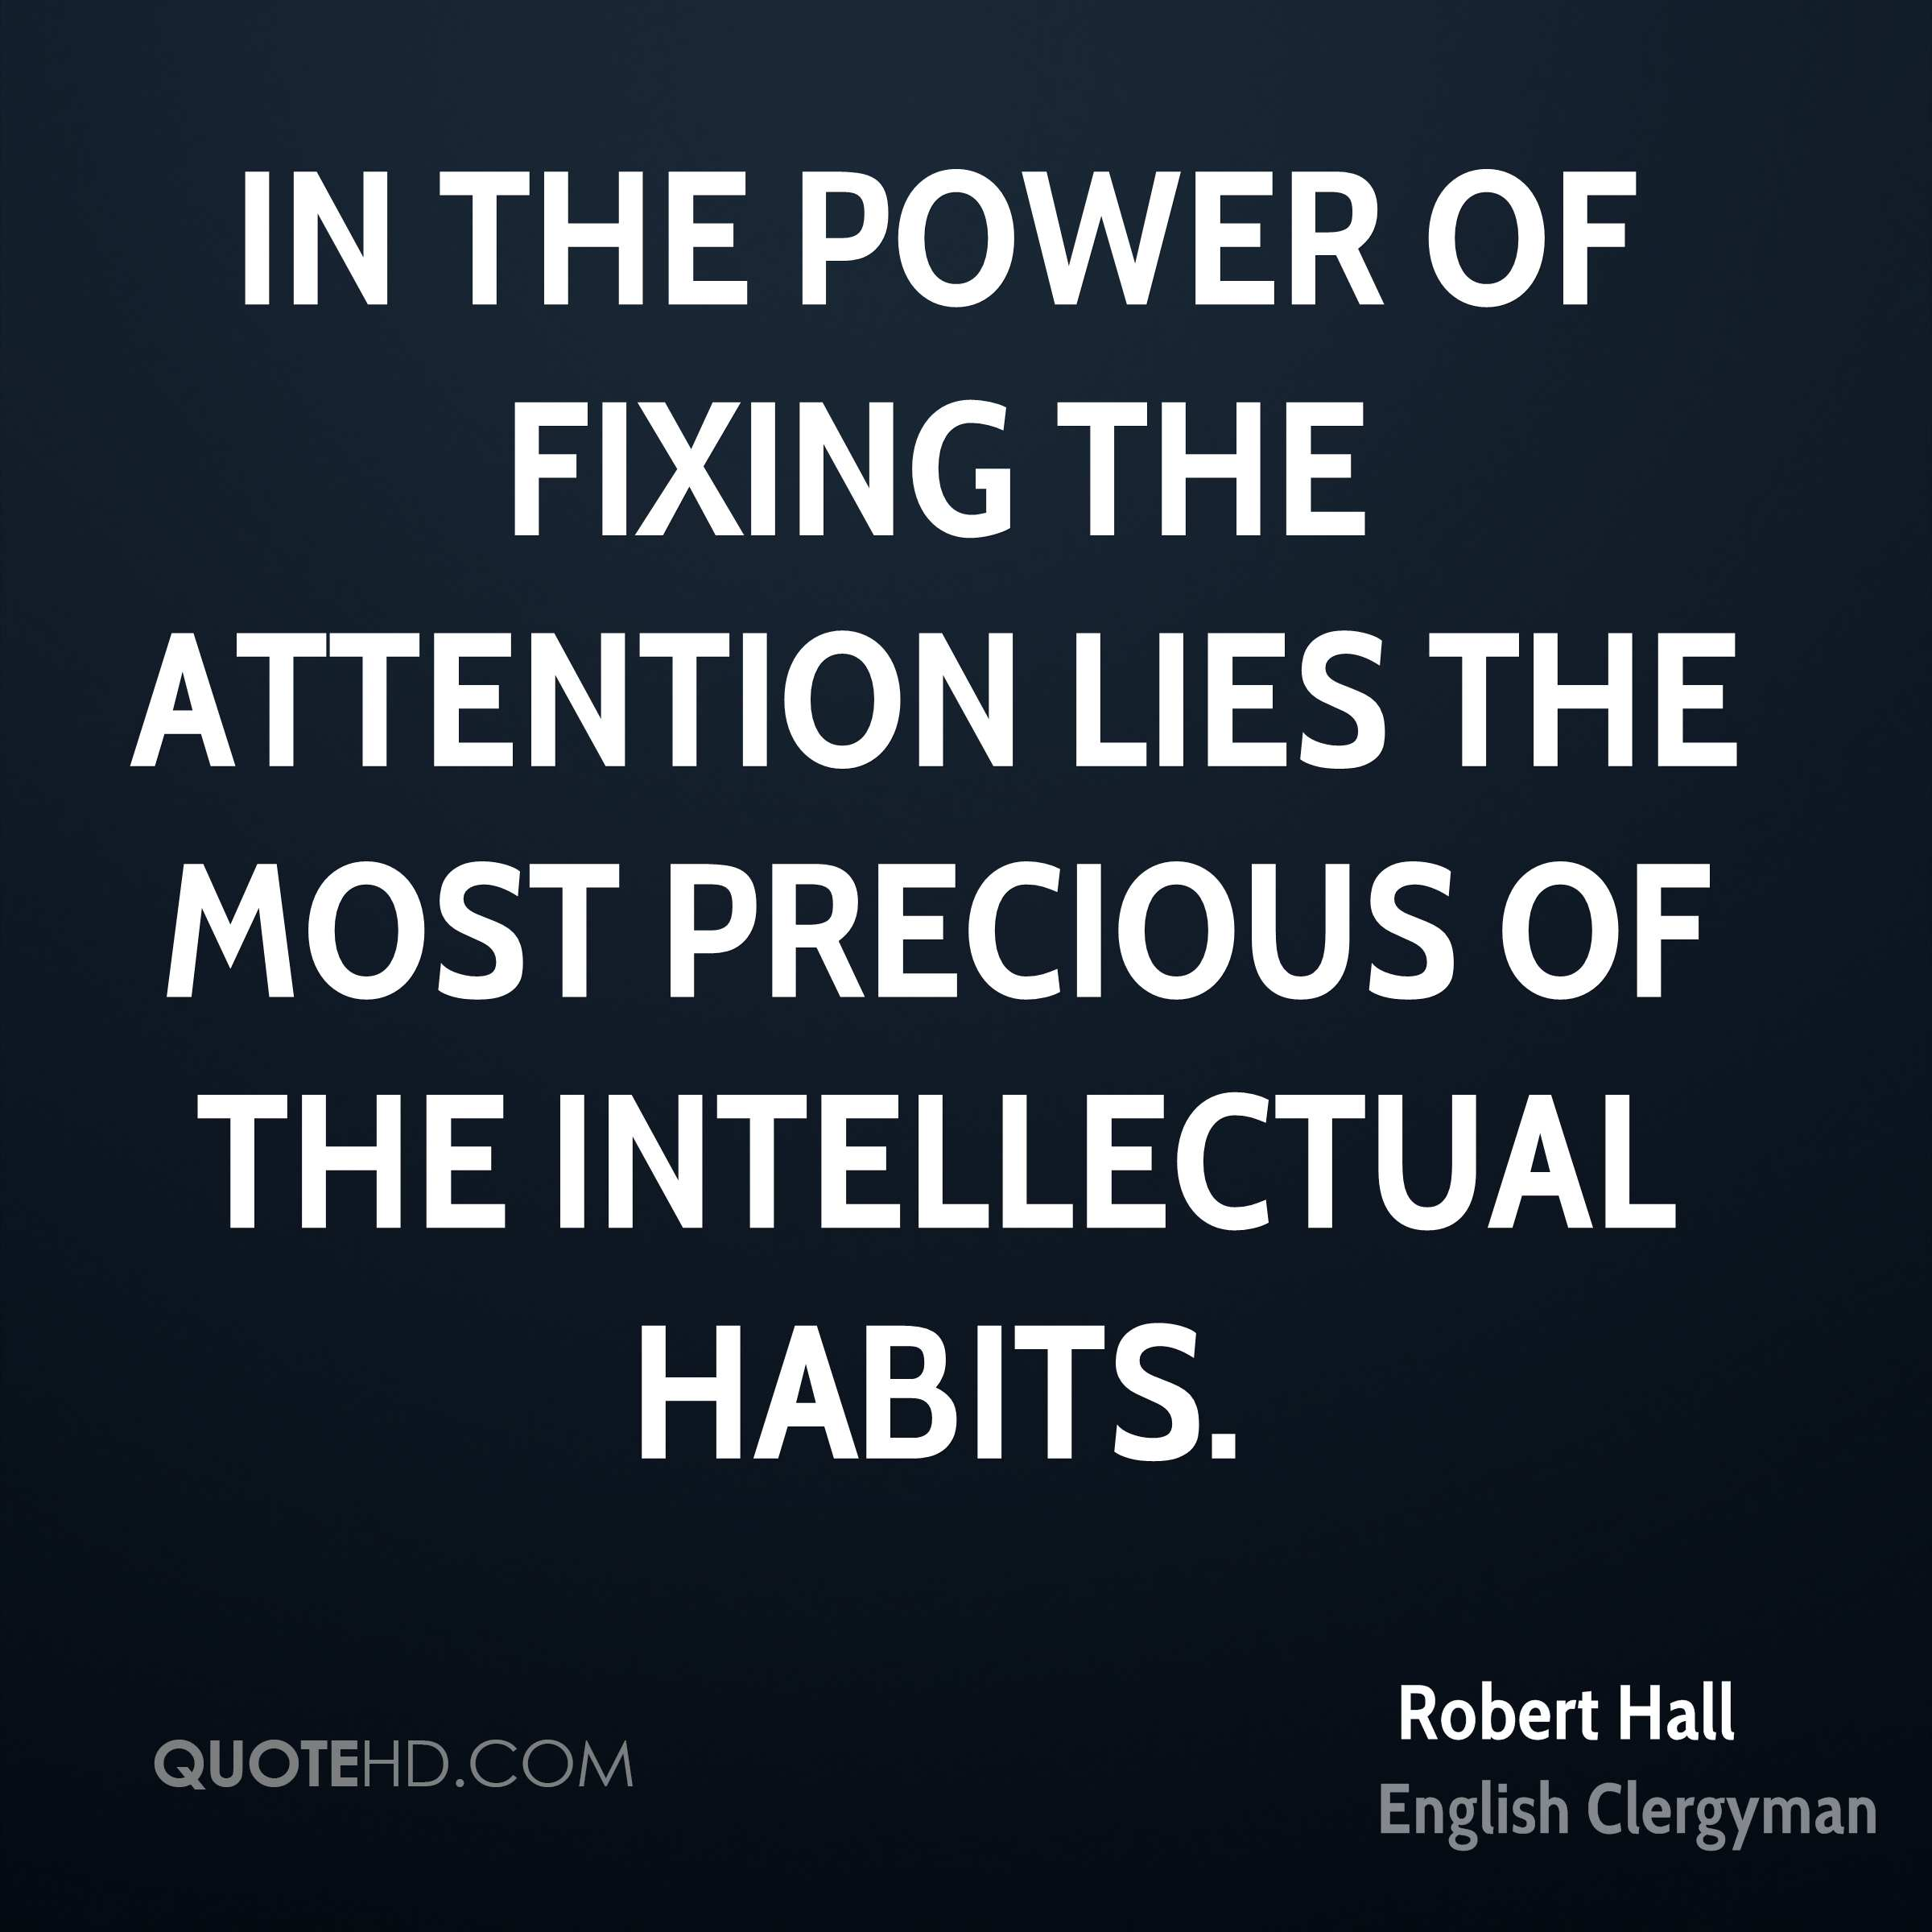 In the power of fixing the attention lies the most precious of the intellectual habits.